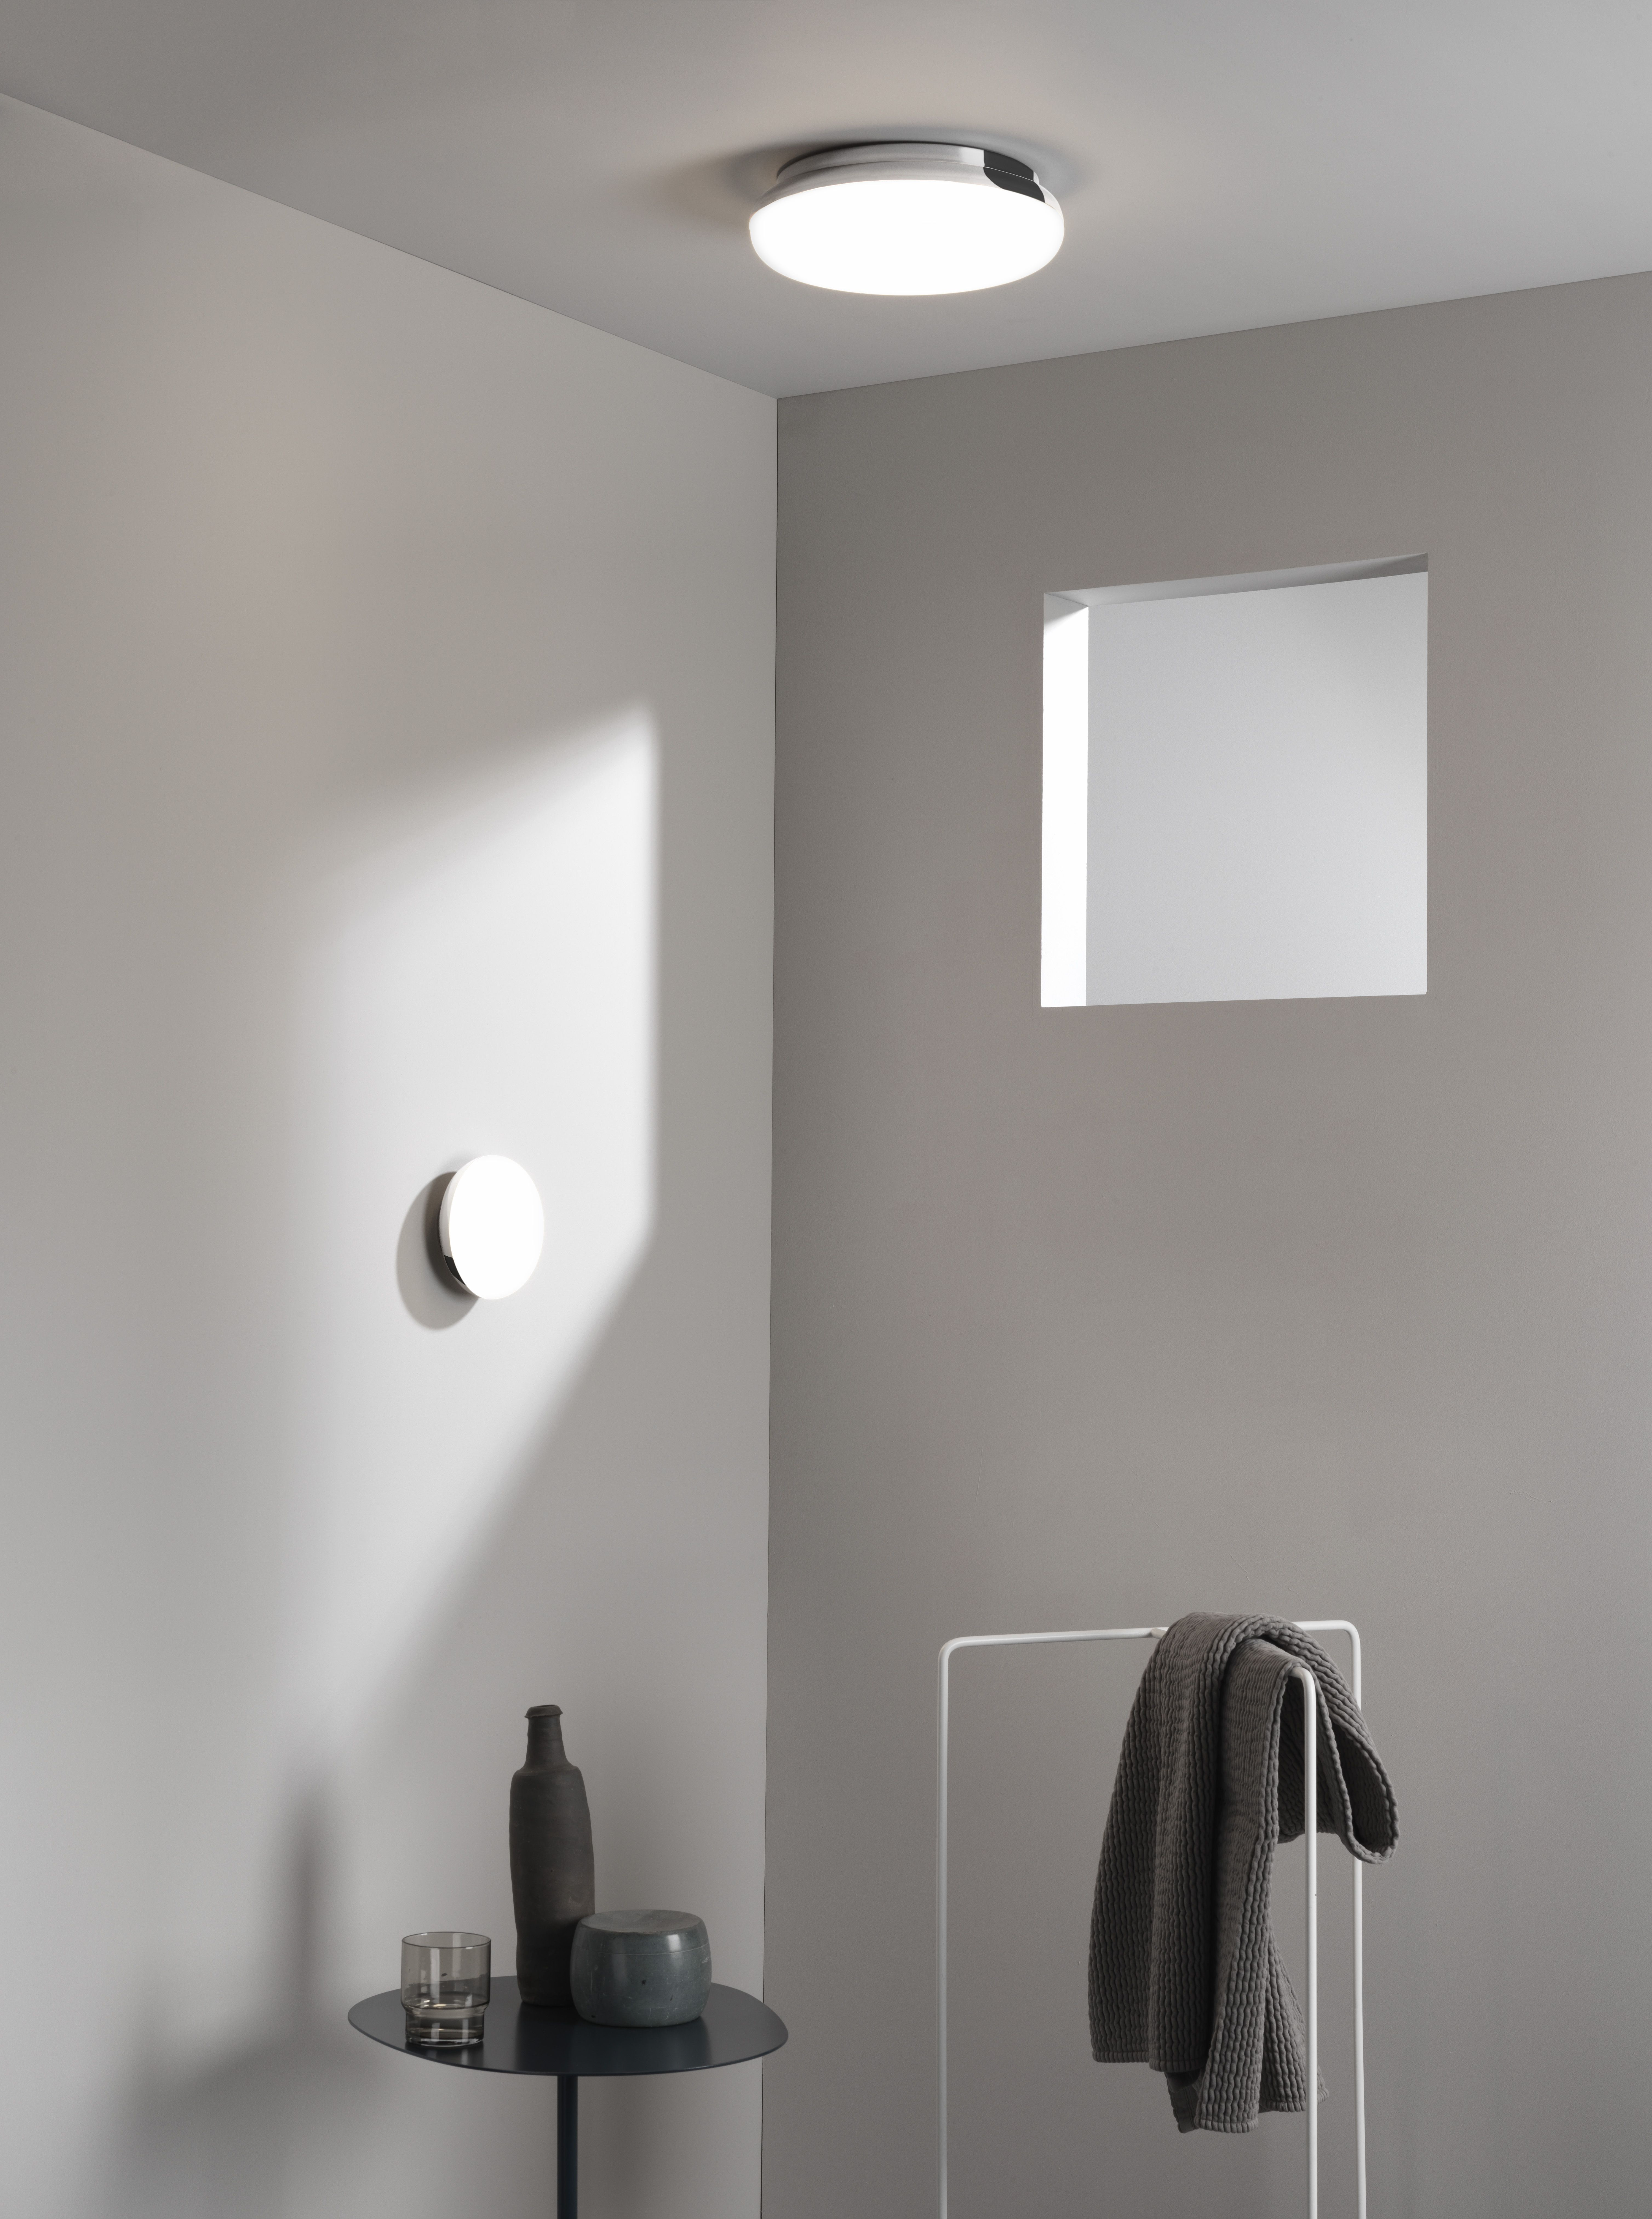 Bathroom Lights Usa altea | bathroom lighting | astro lighting | astro lighting usa